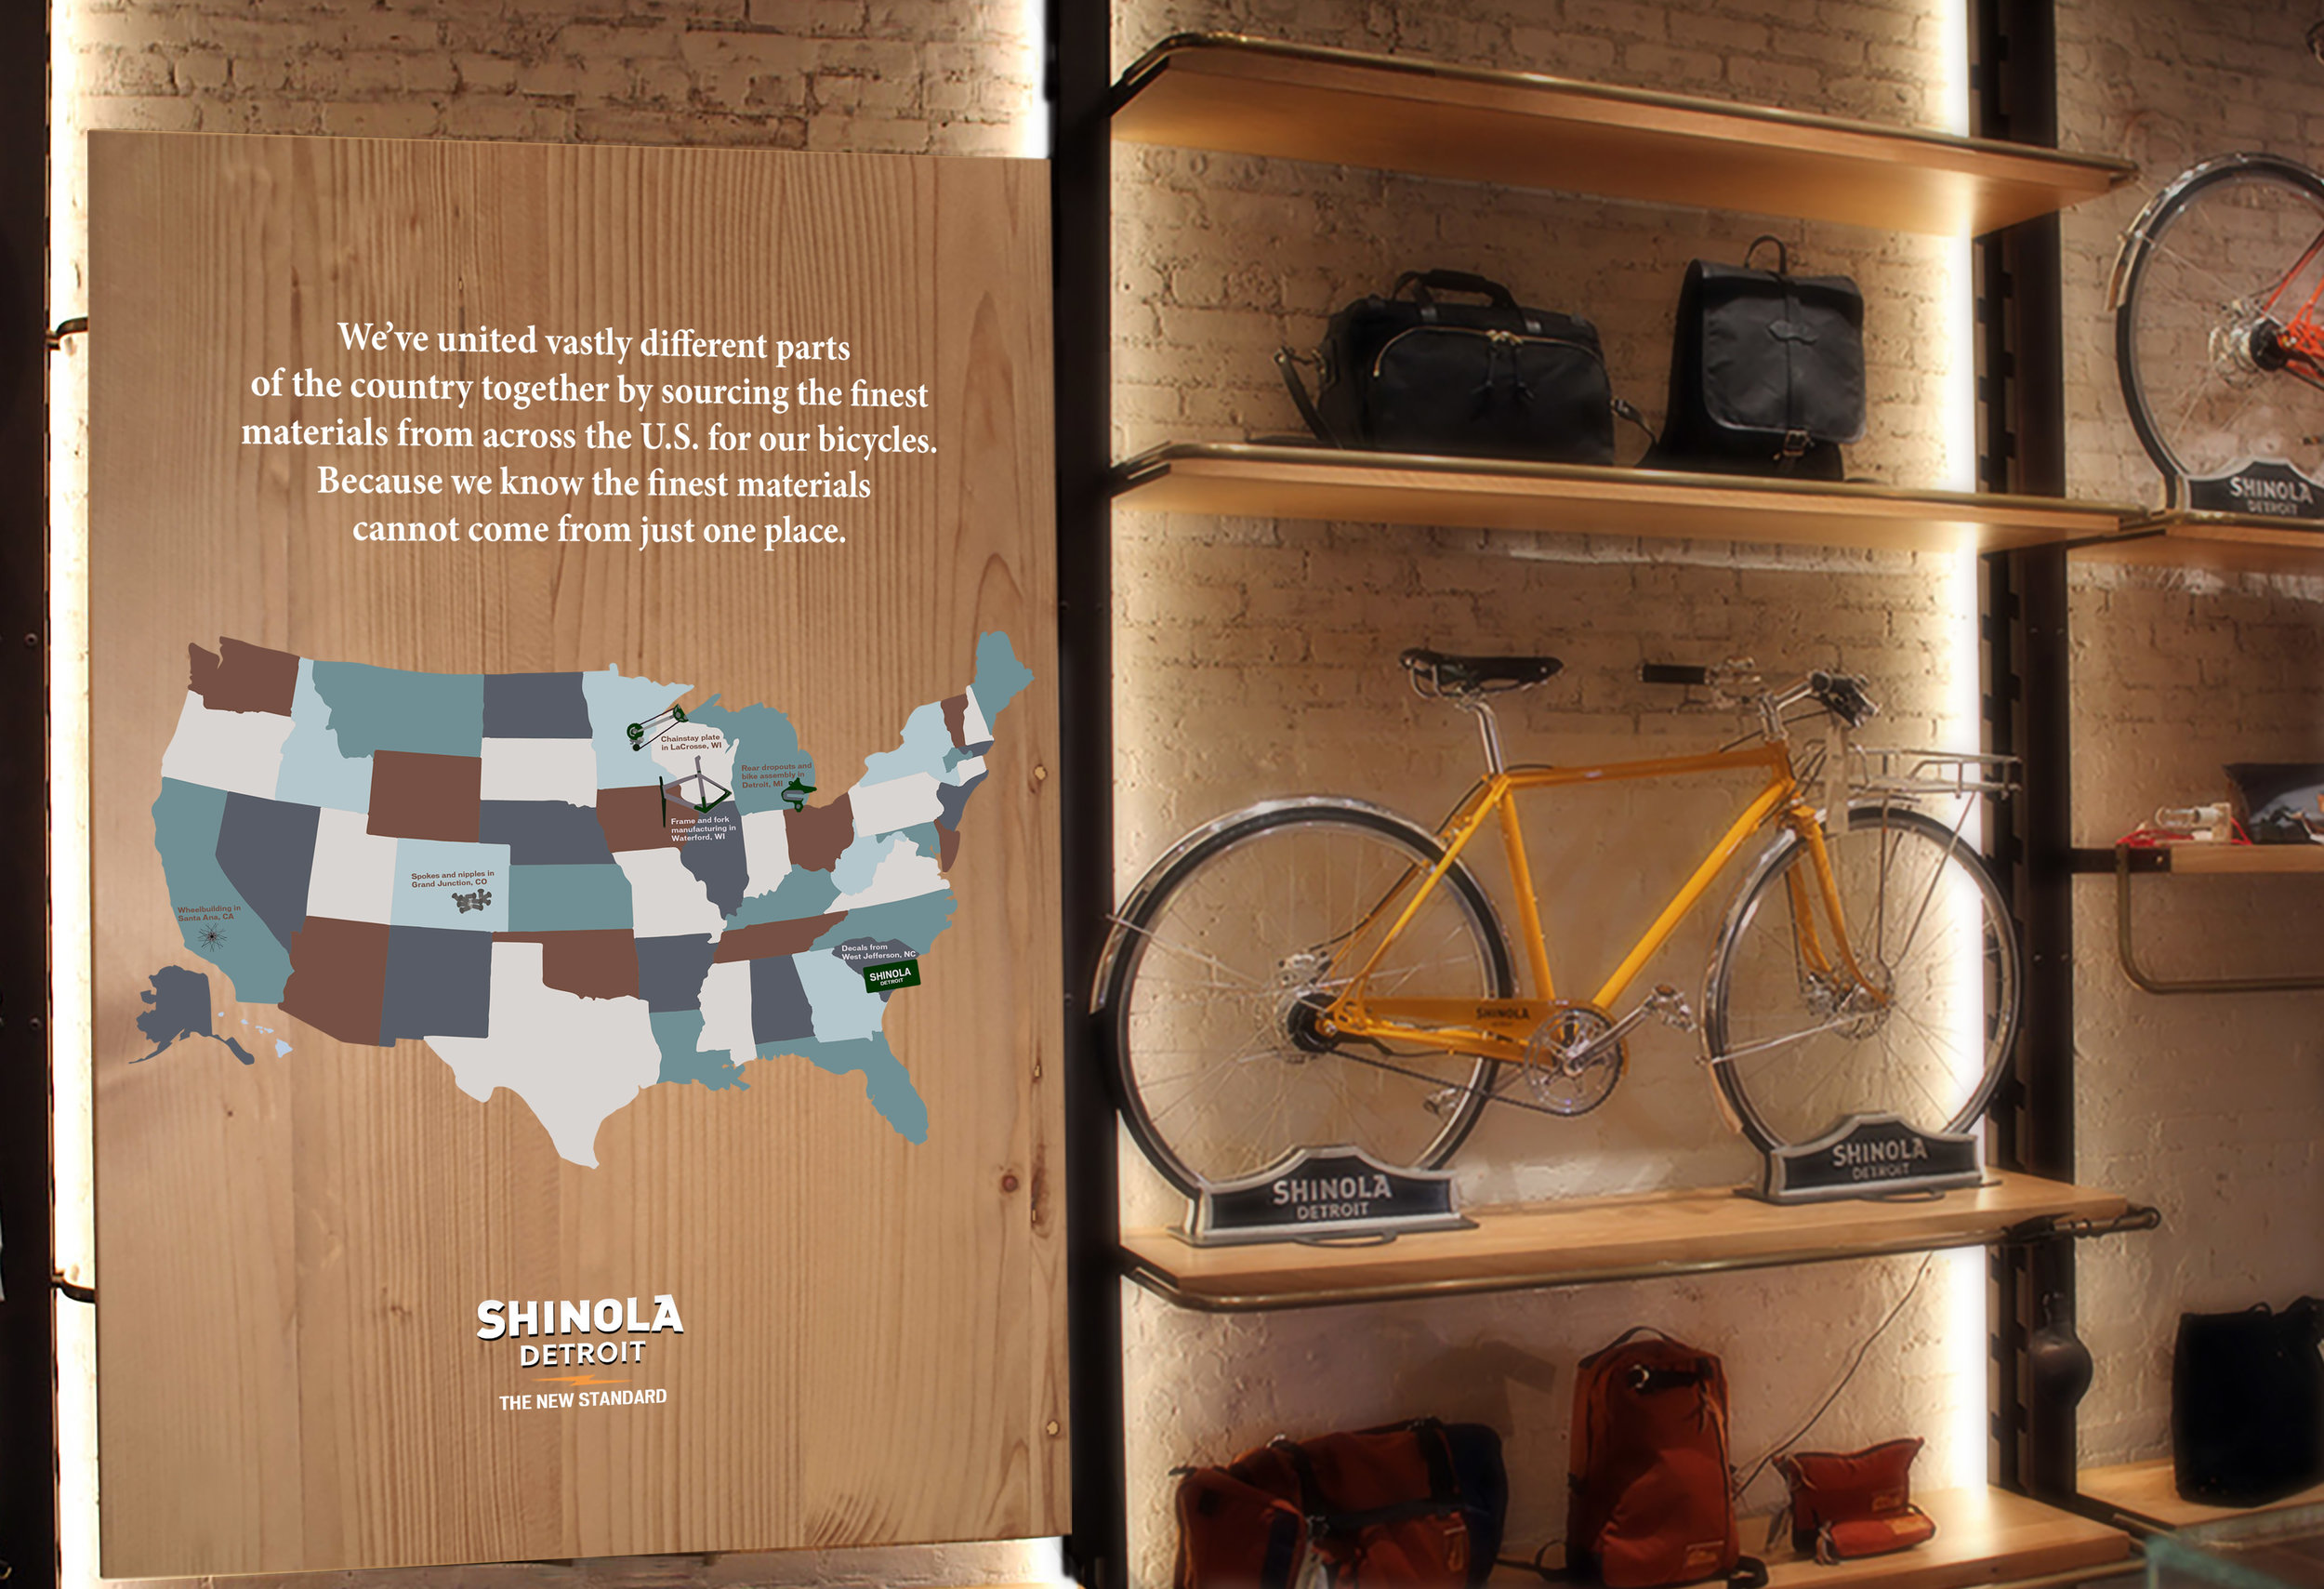 Shinola sources its materials from the best crafters in five different states and then assembles the bikes in Detroit. Hand-painted mural in stores showing the parts that make up a Shinola and from where they derived.